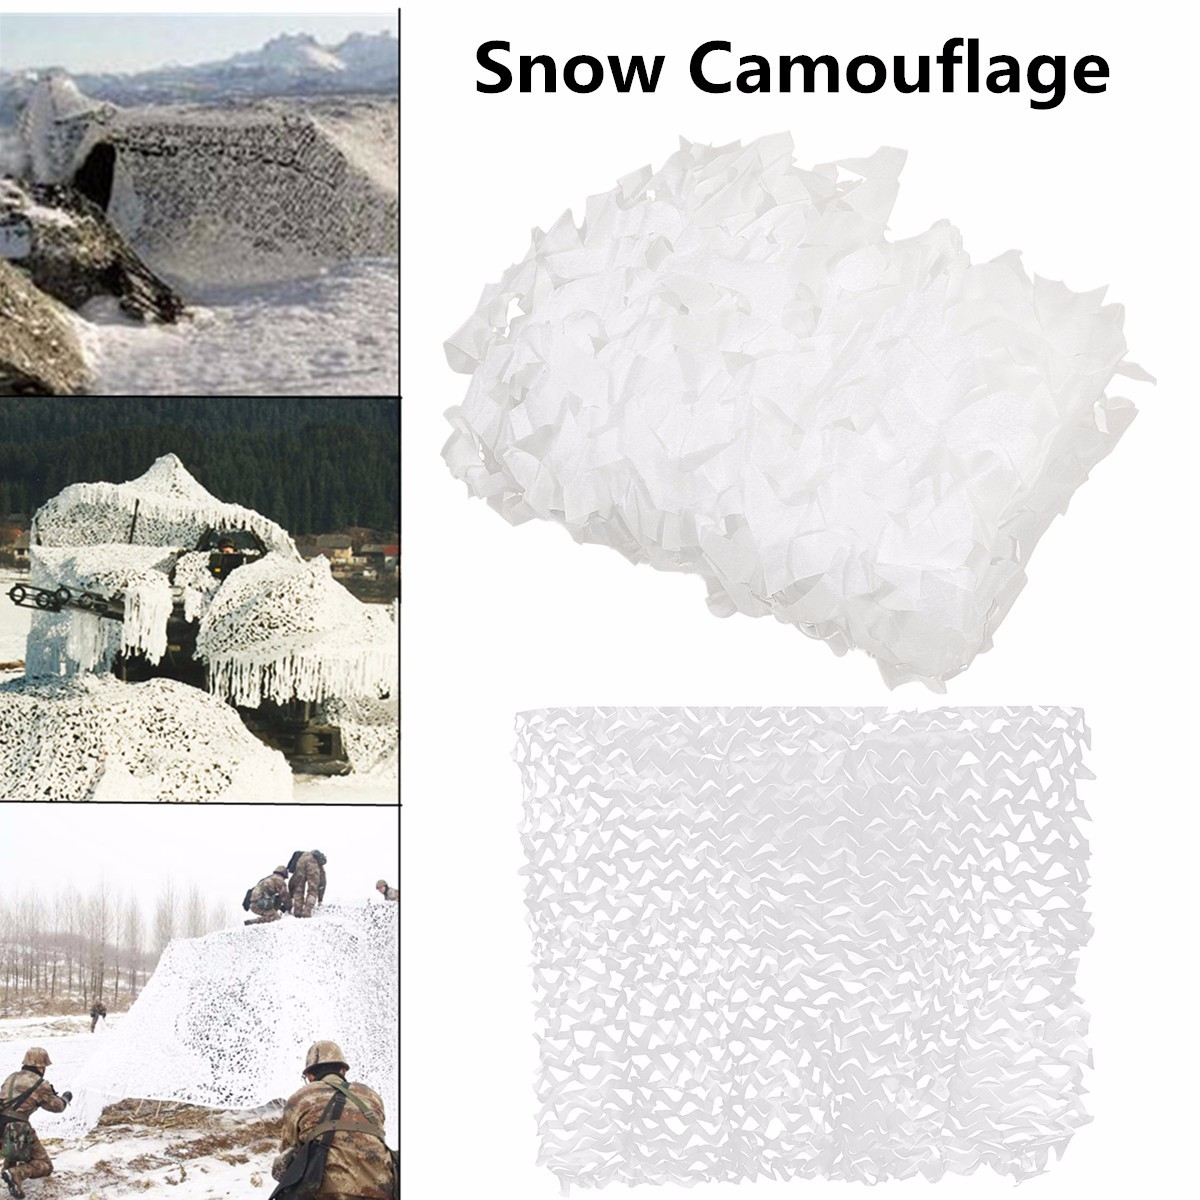 Woodland Leaves Netting Camouflage Camo Army Net Netting Leaves Camping Military Hunting New bdacab